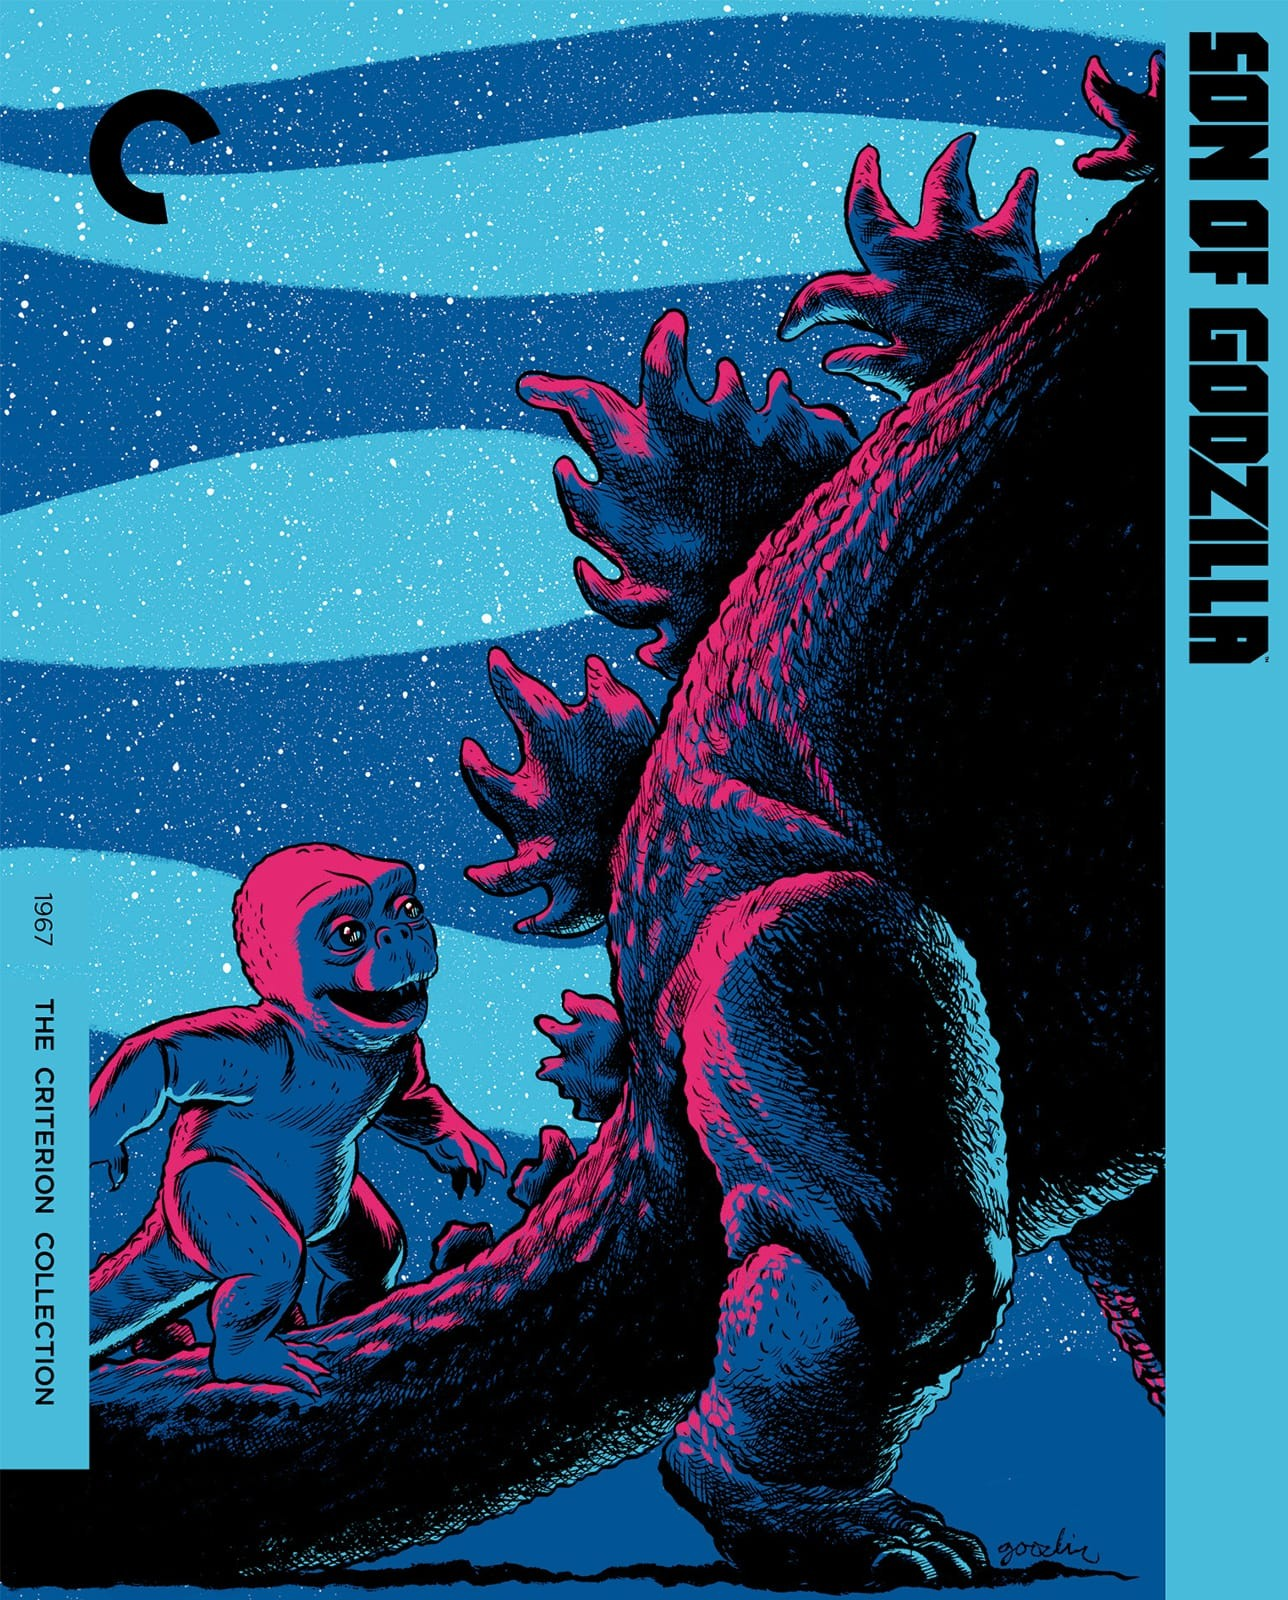 Son of Godzilla (1967) | The Criterion Collection